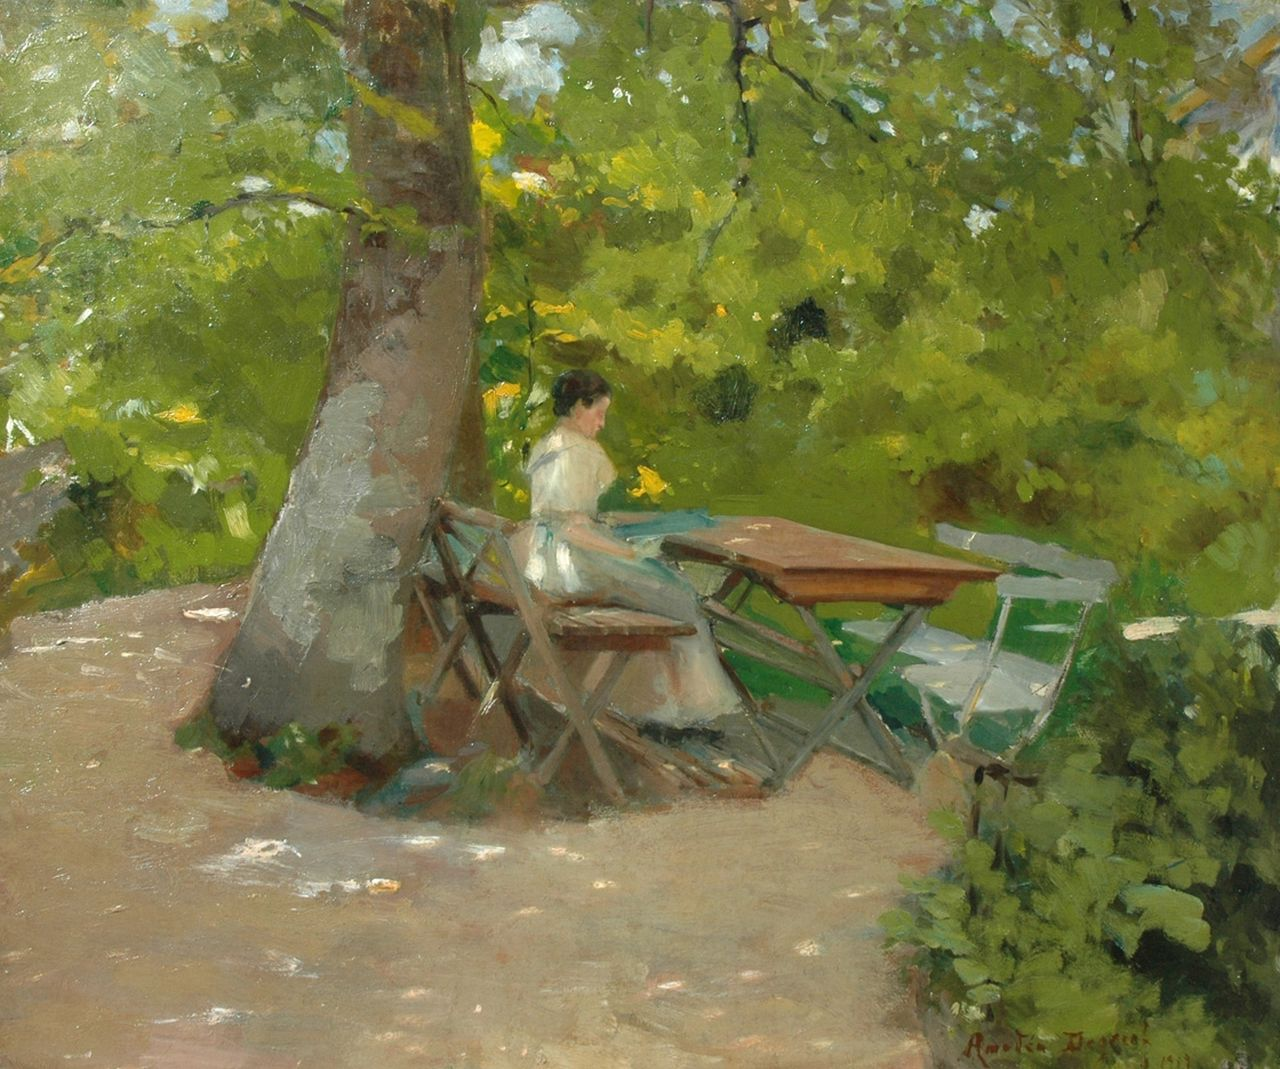 Amédée Degreef | A young woman reading in the garden, oil on canvas, 50.4 x 60.2 cm, signed l.r. and dated 1919